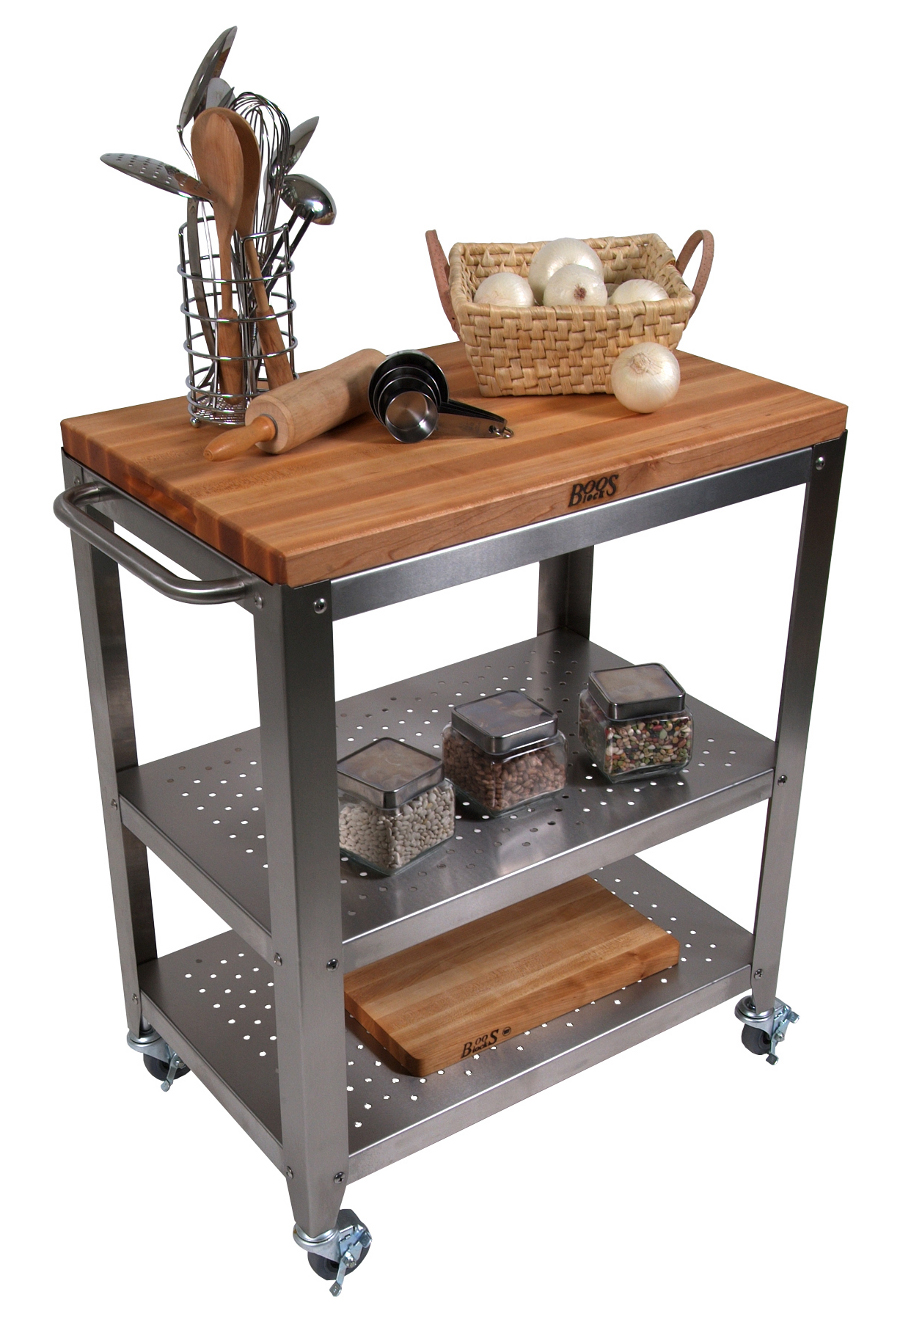 superb Rolling Butcher Block Kitchen Cart #1: Boos Cucina Culinarte Cart u2013 Removable 30x20 Maple Butcher Block